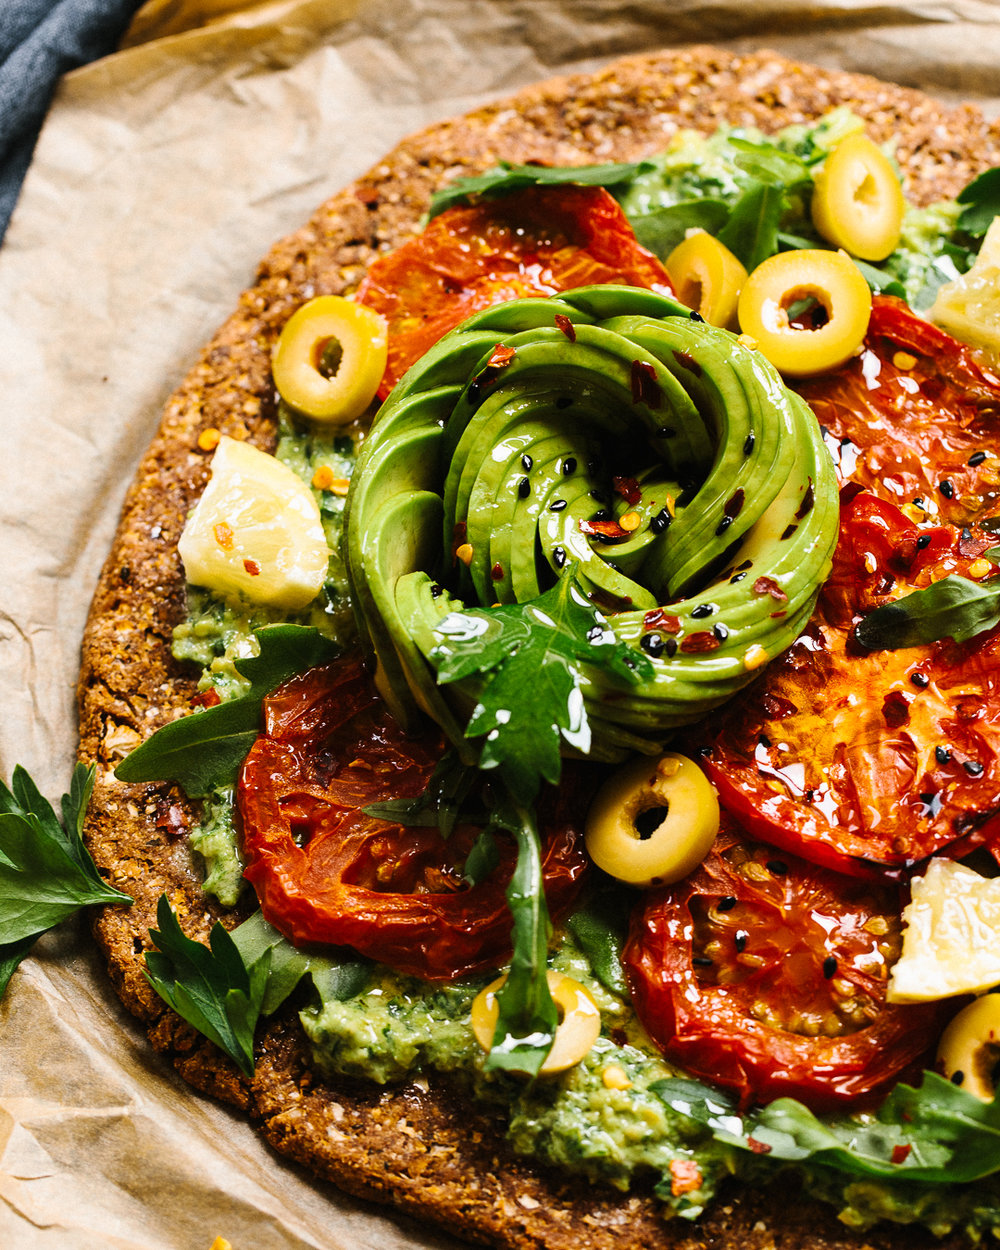 Vegan_Cauliflower_Pizza_by_Jordan_Pie_Nutritionist_Photographer-1.jpg